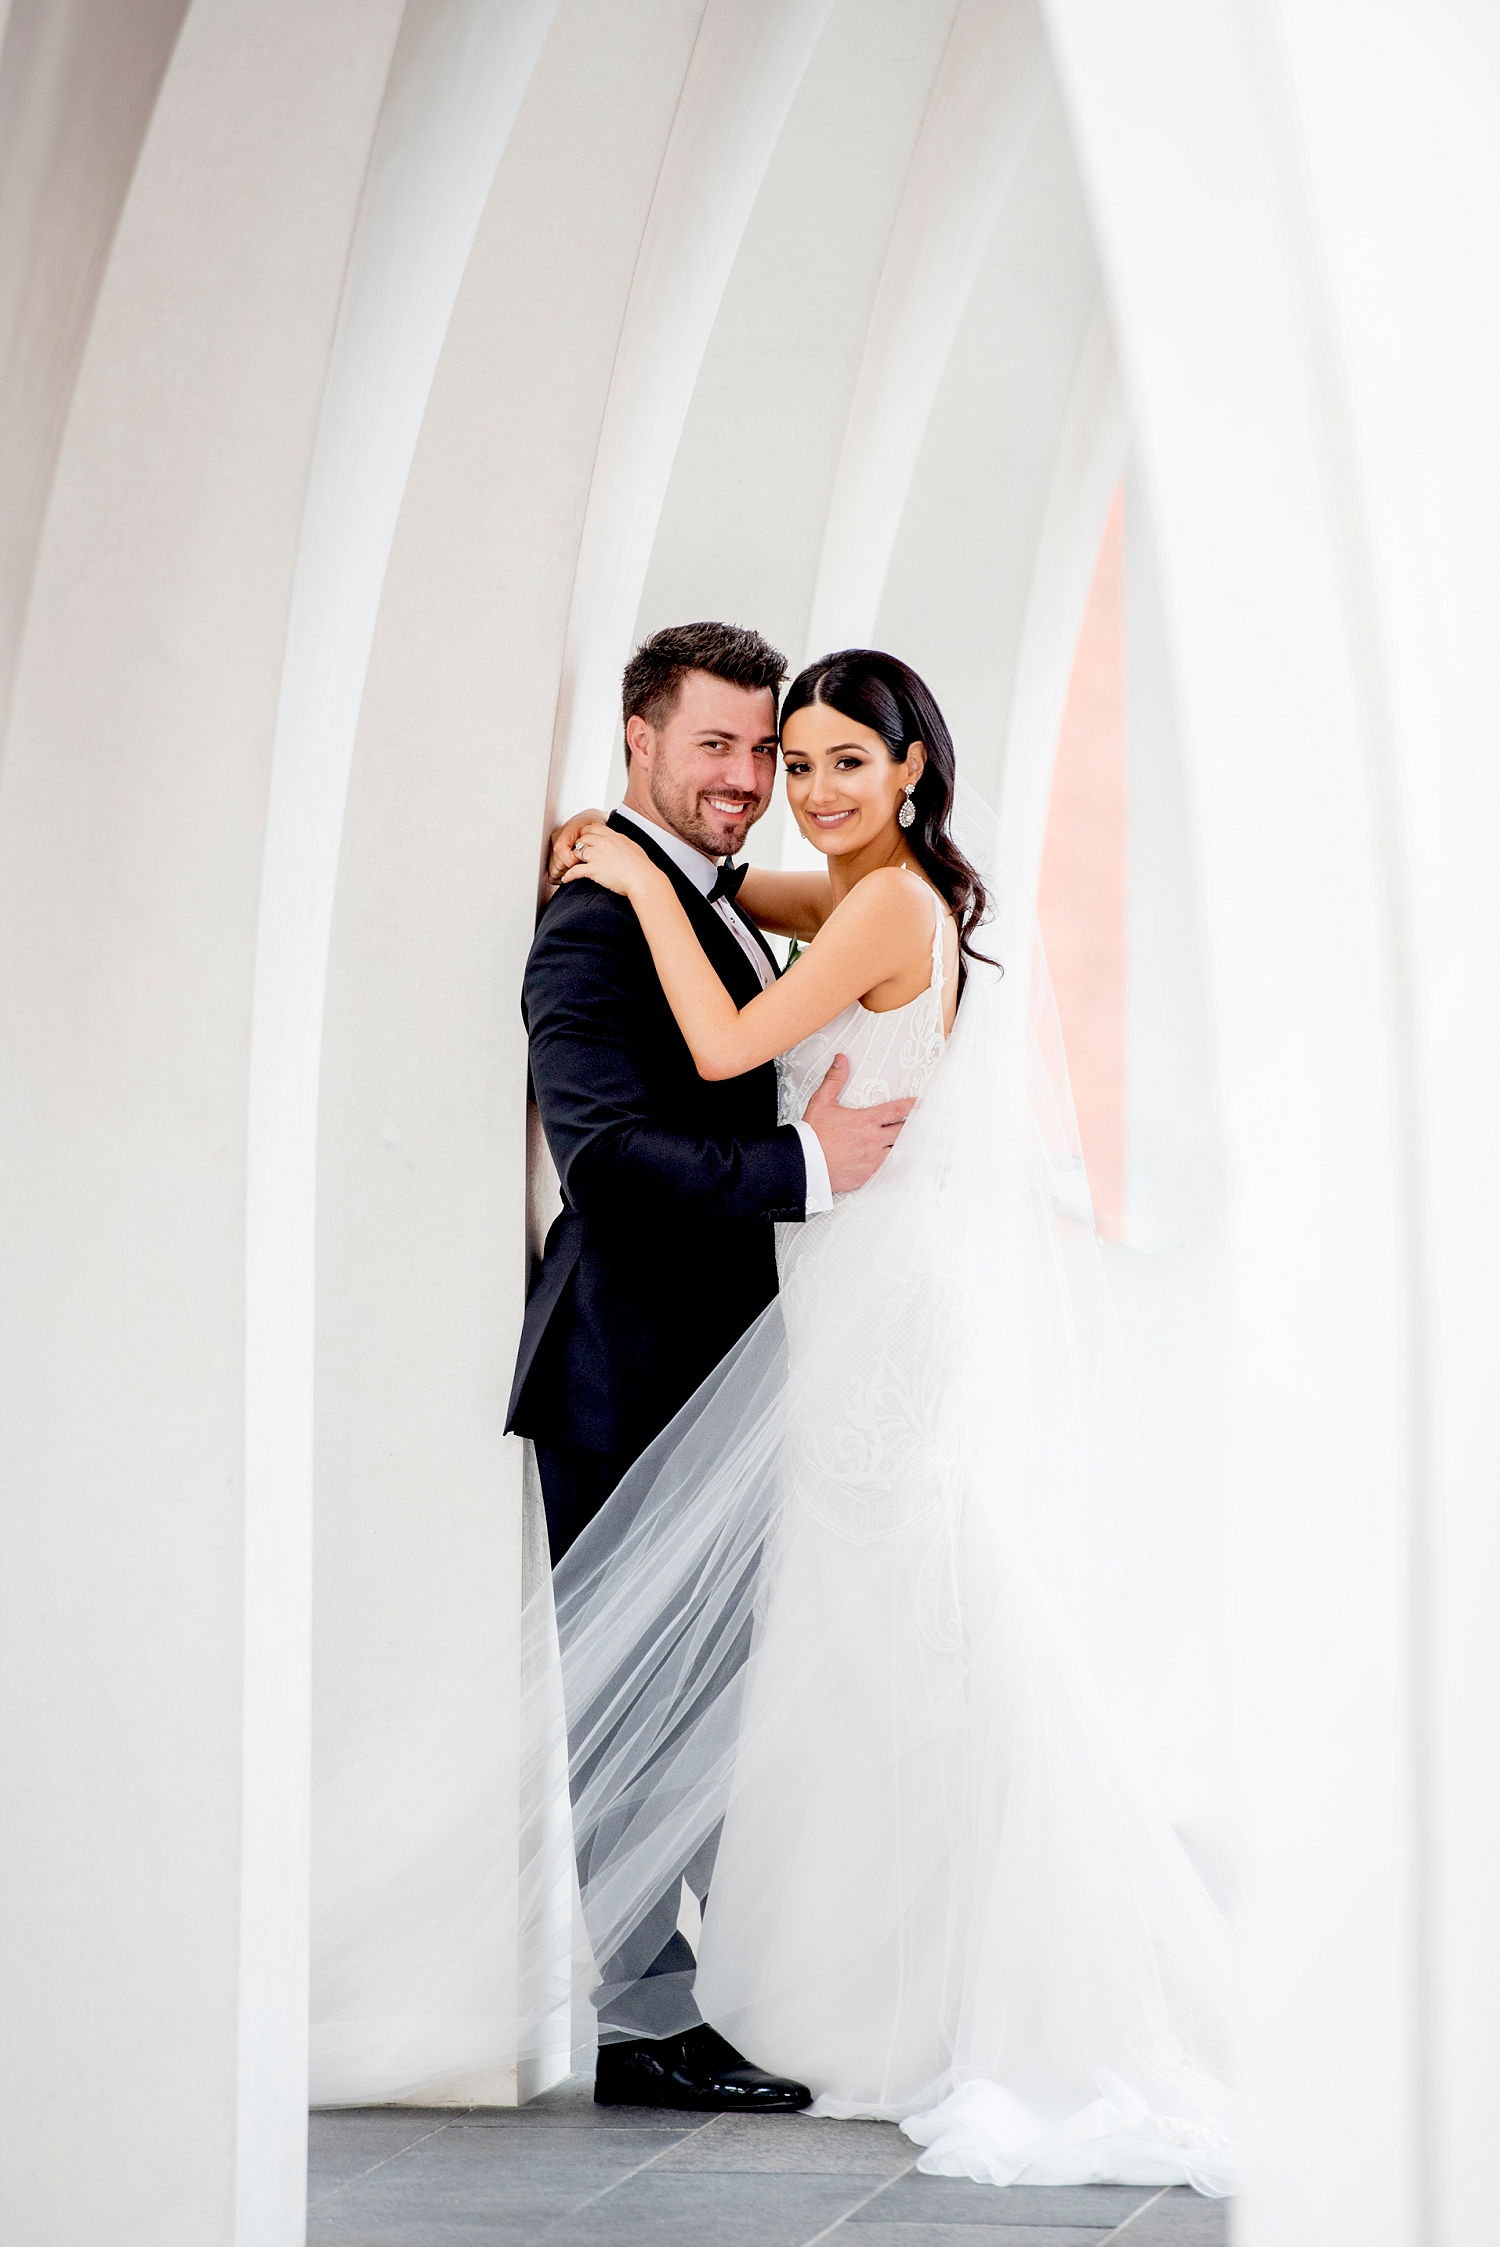 43_st georges cathedral wedding arches perth.jpg